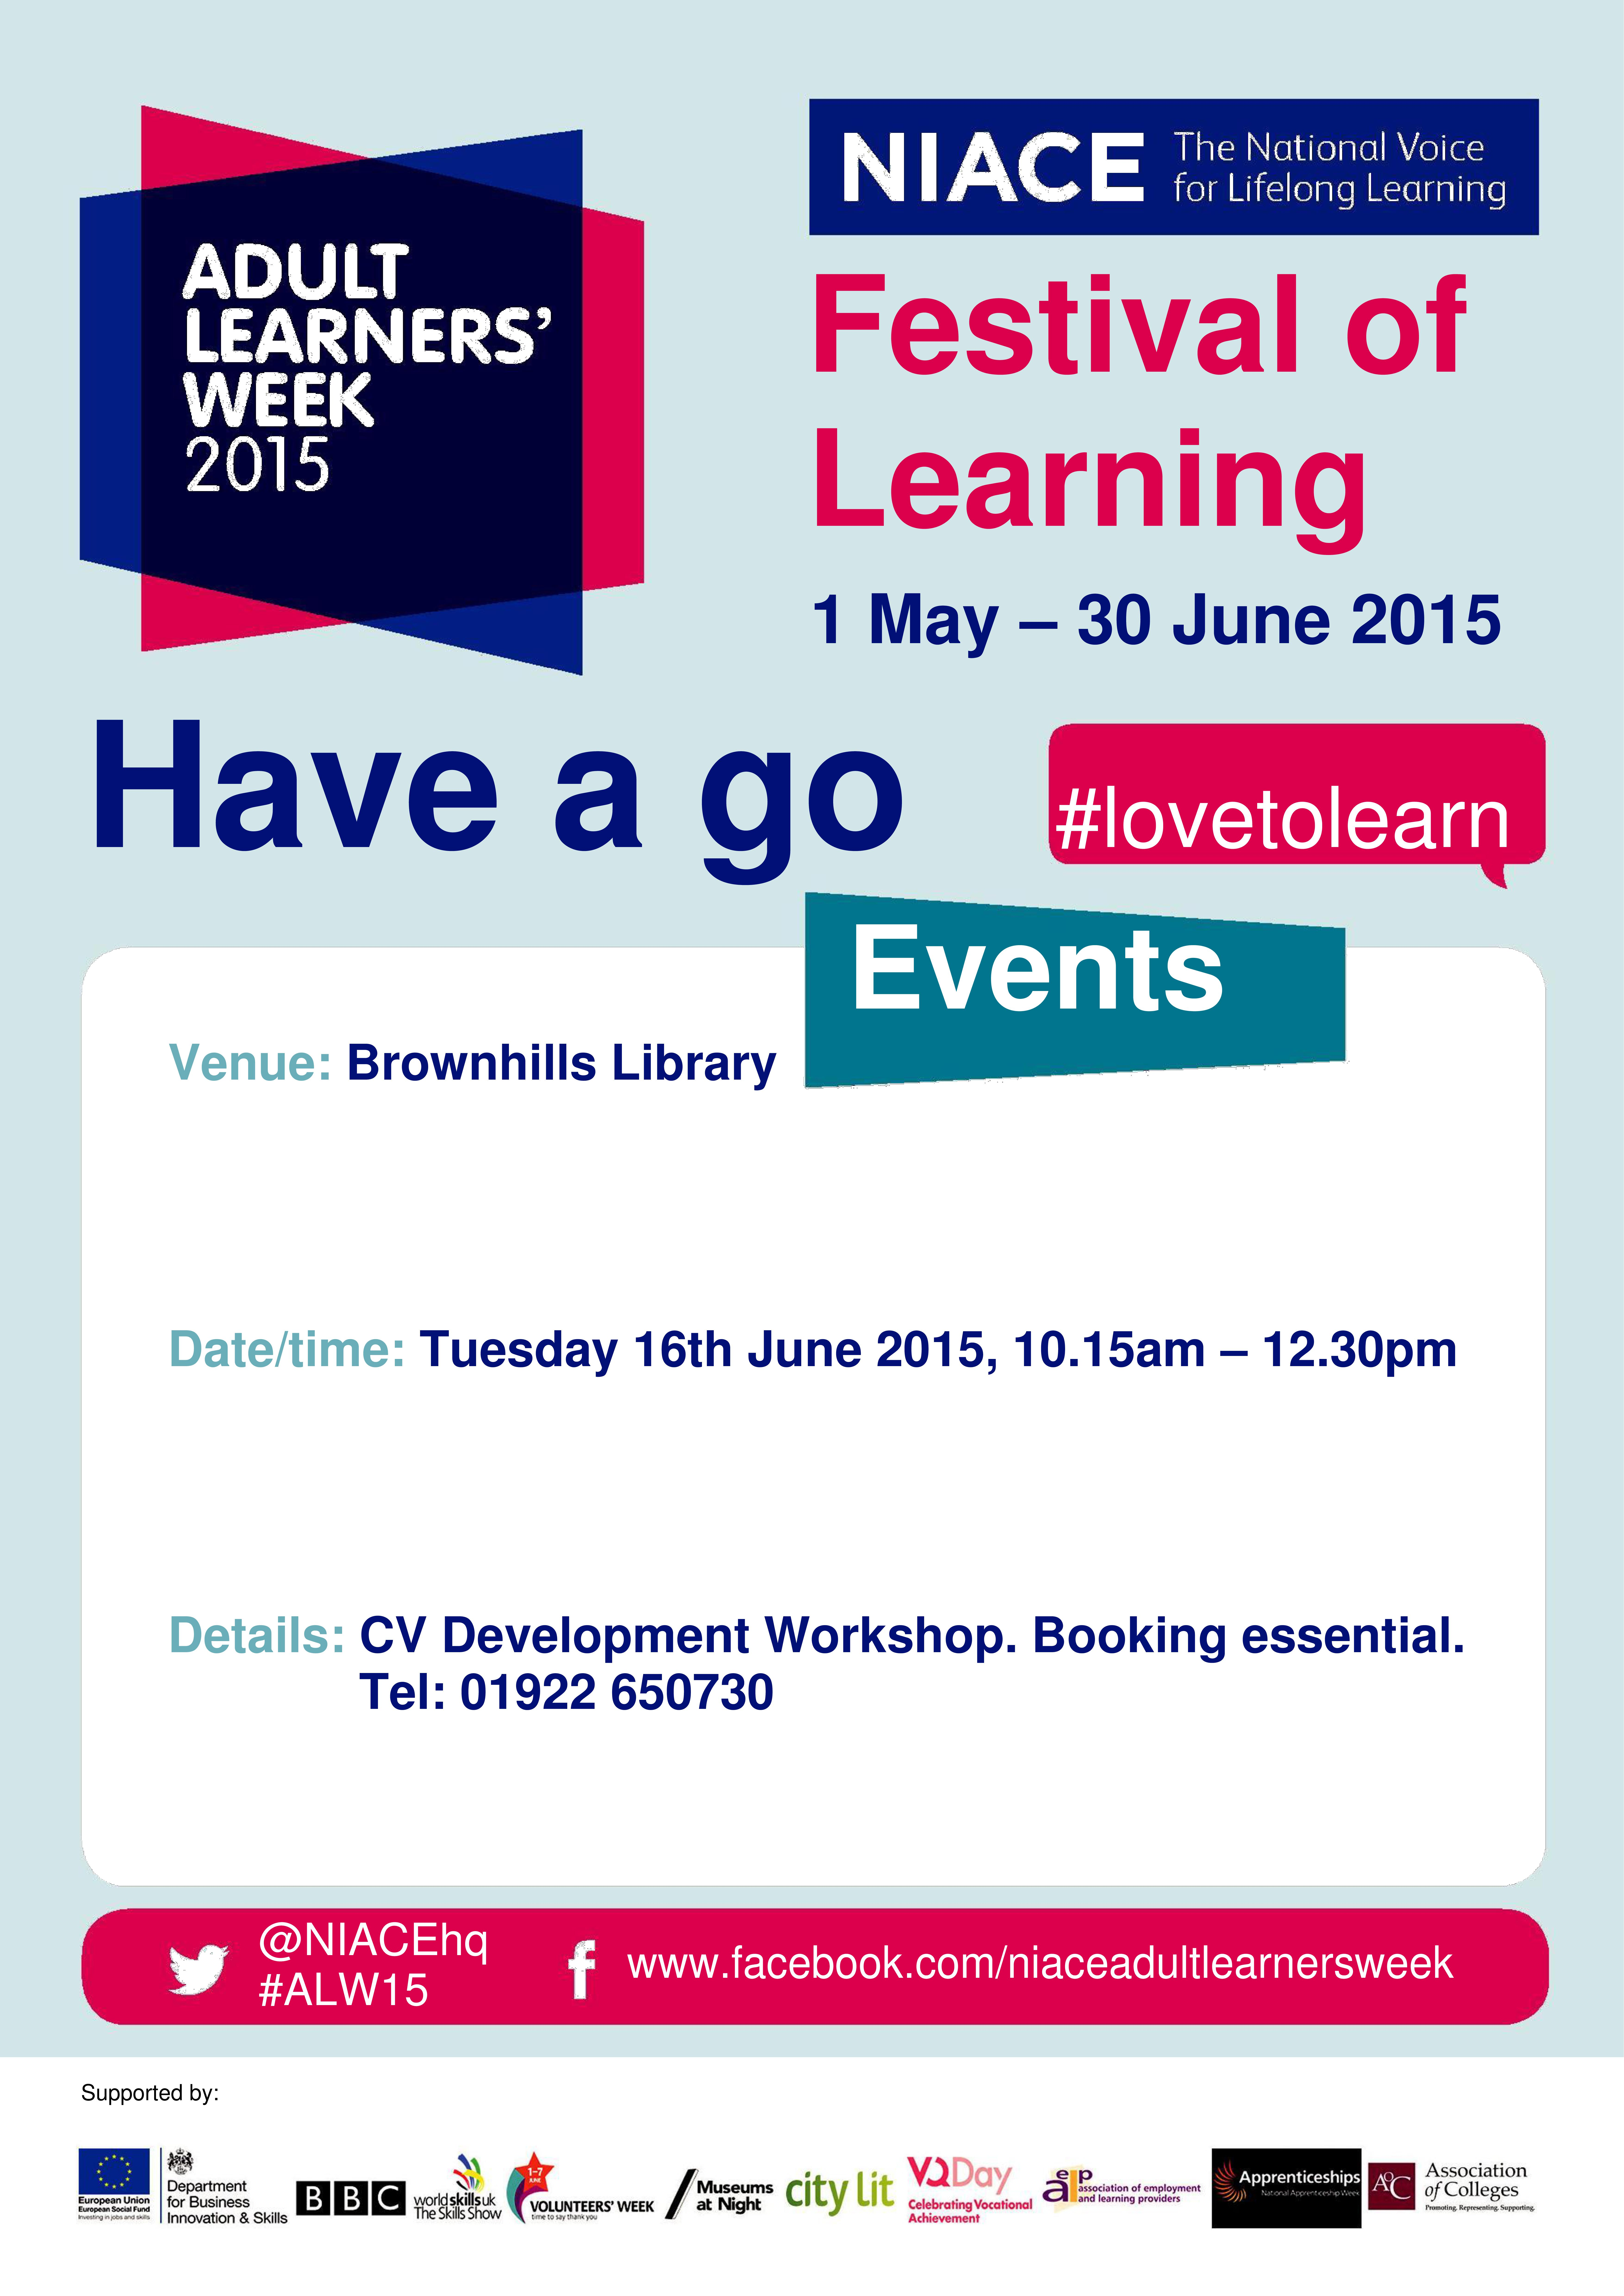 need help creating your cv workshop tomorrow naomi jones area librarian from brownhills library at the parkview centre has been in touch to ask if i could give a plug for a cv development workshop